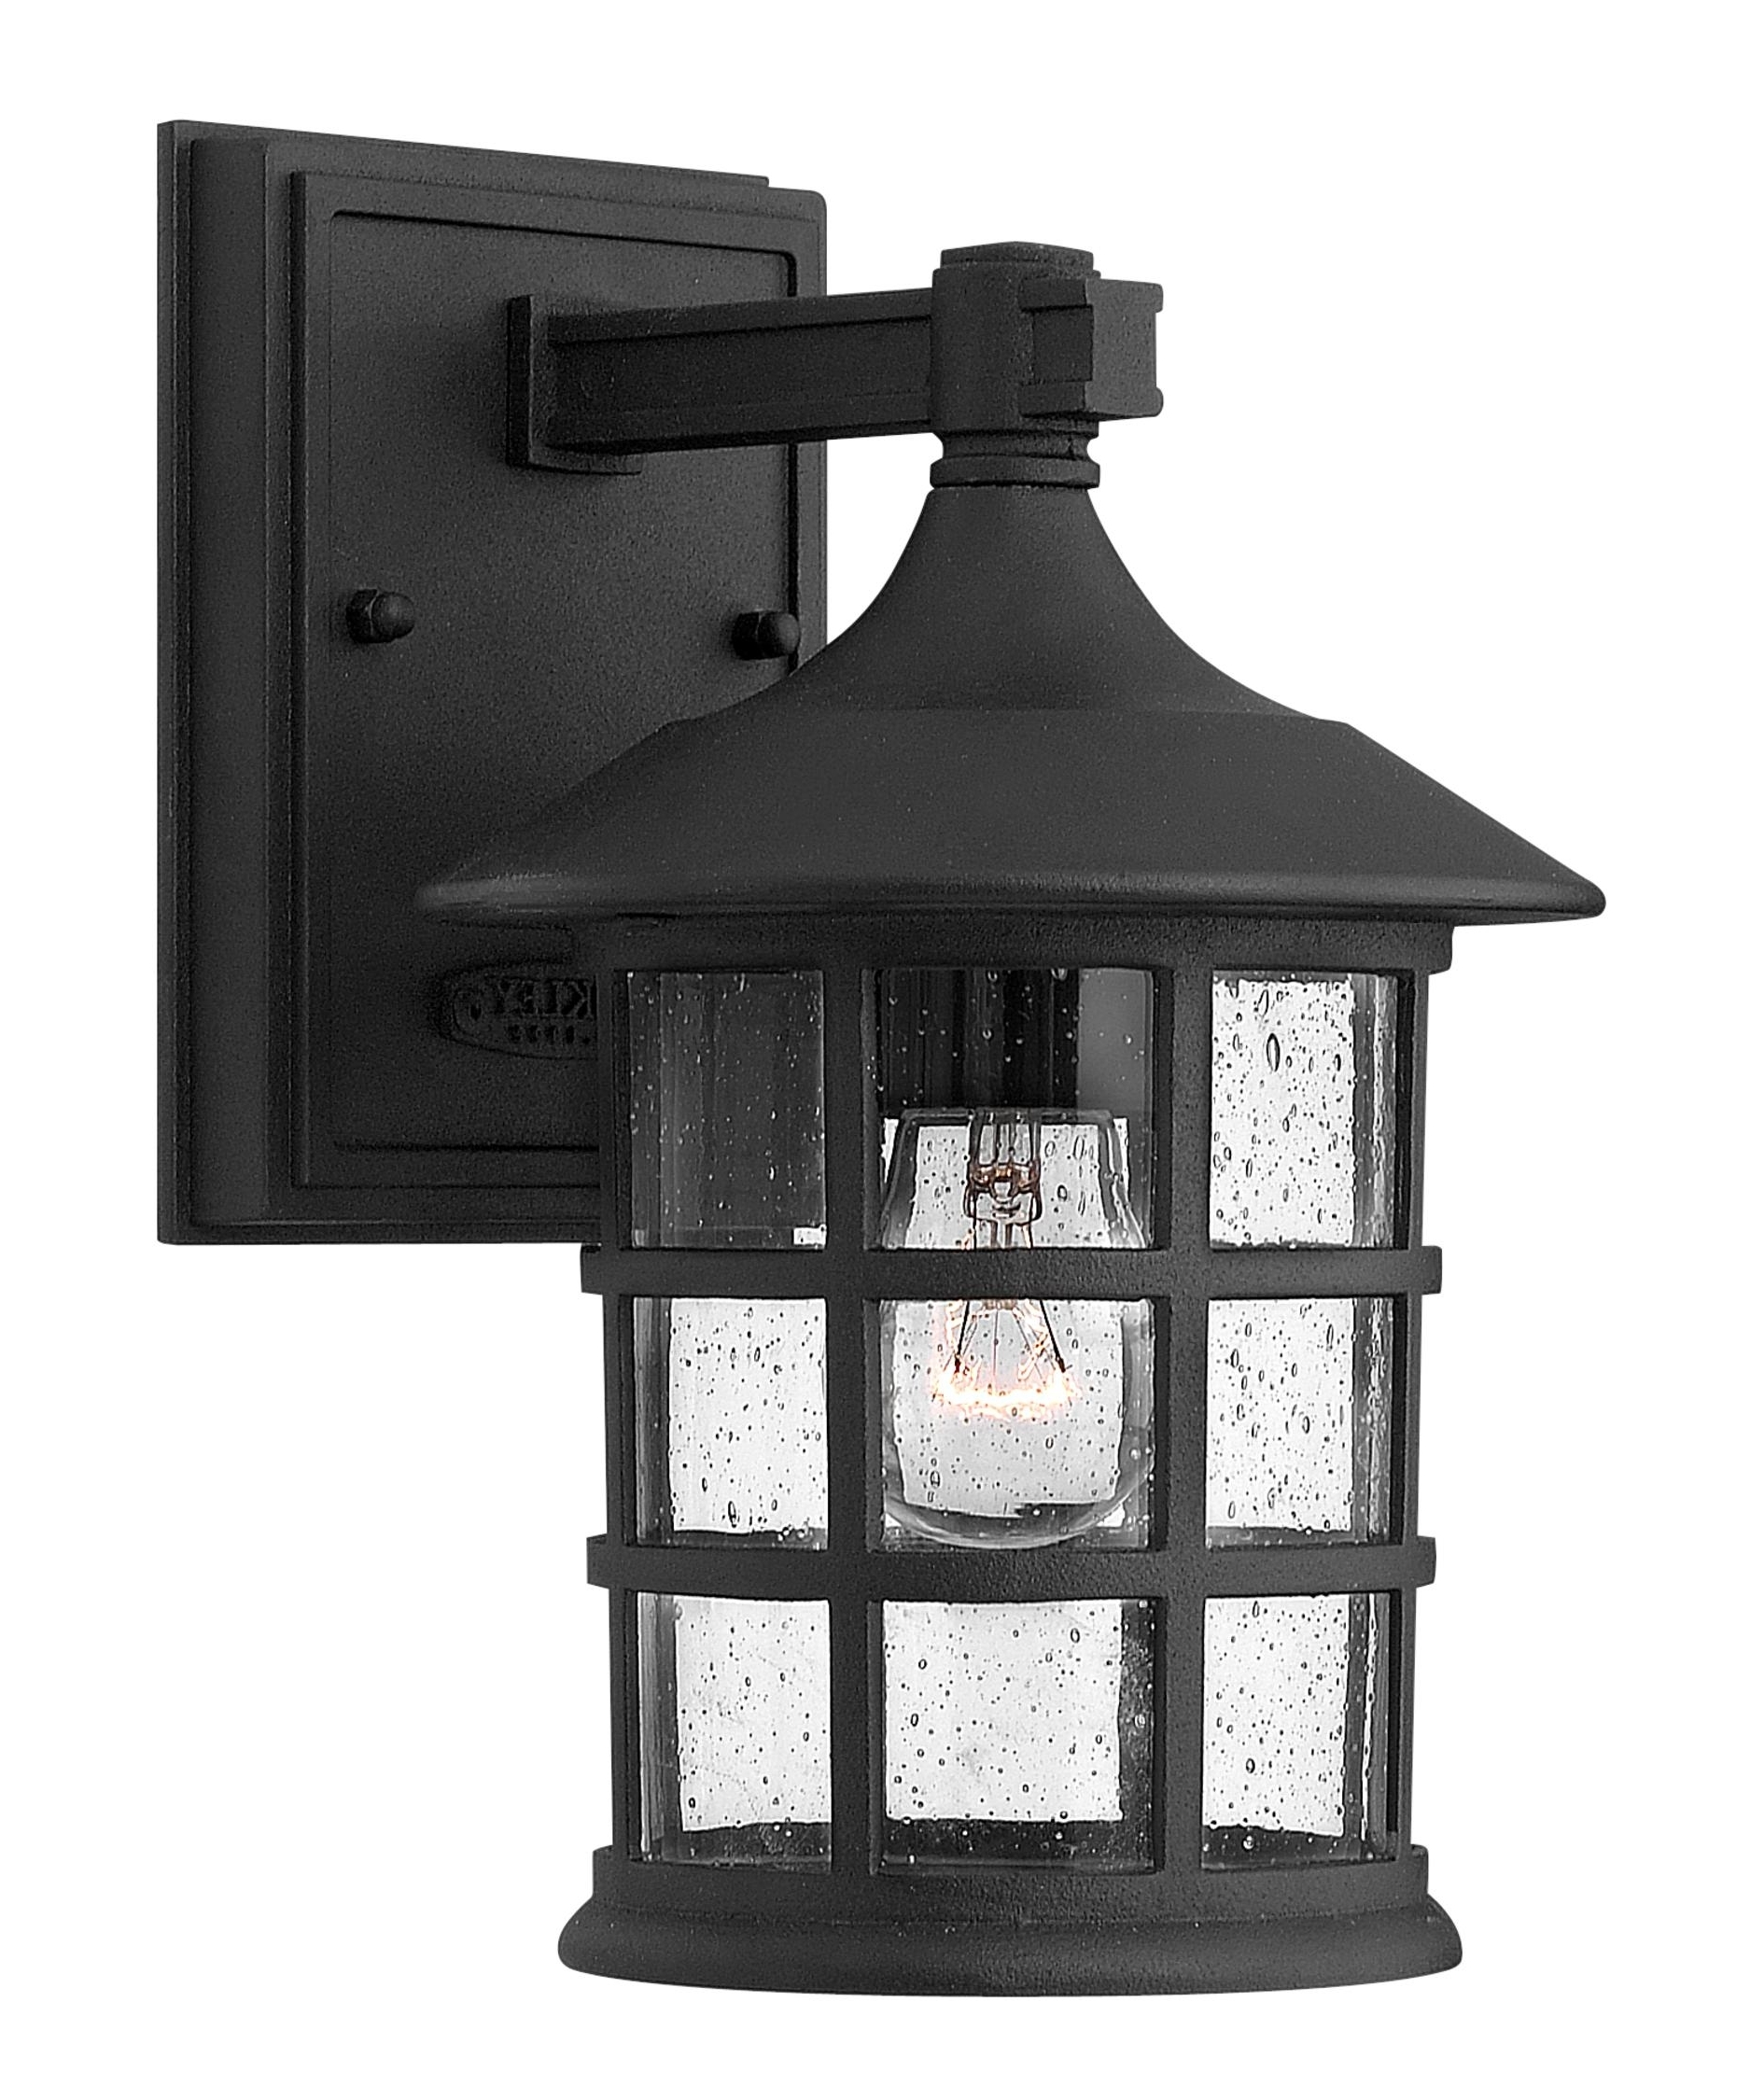 Outdoor Wall Lighting Intended For 2019 Hinkley Lighting 1800 Freeport 6 Inch Wide 1 Light Outdoor Wall (View 10 of 20)